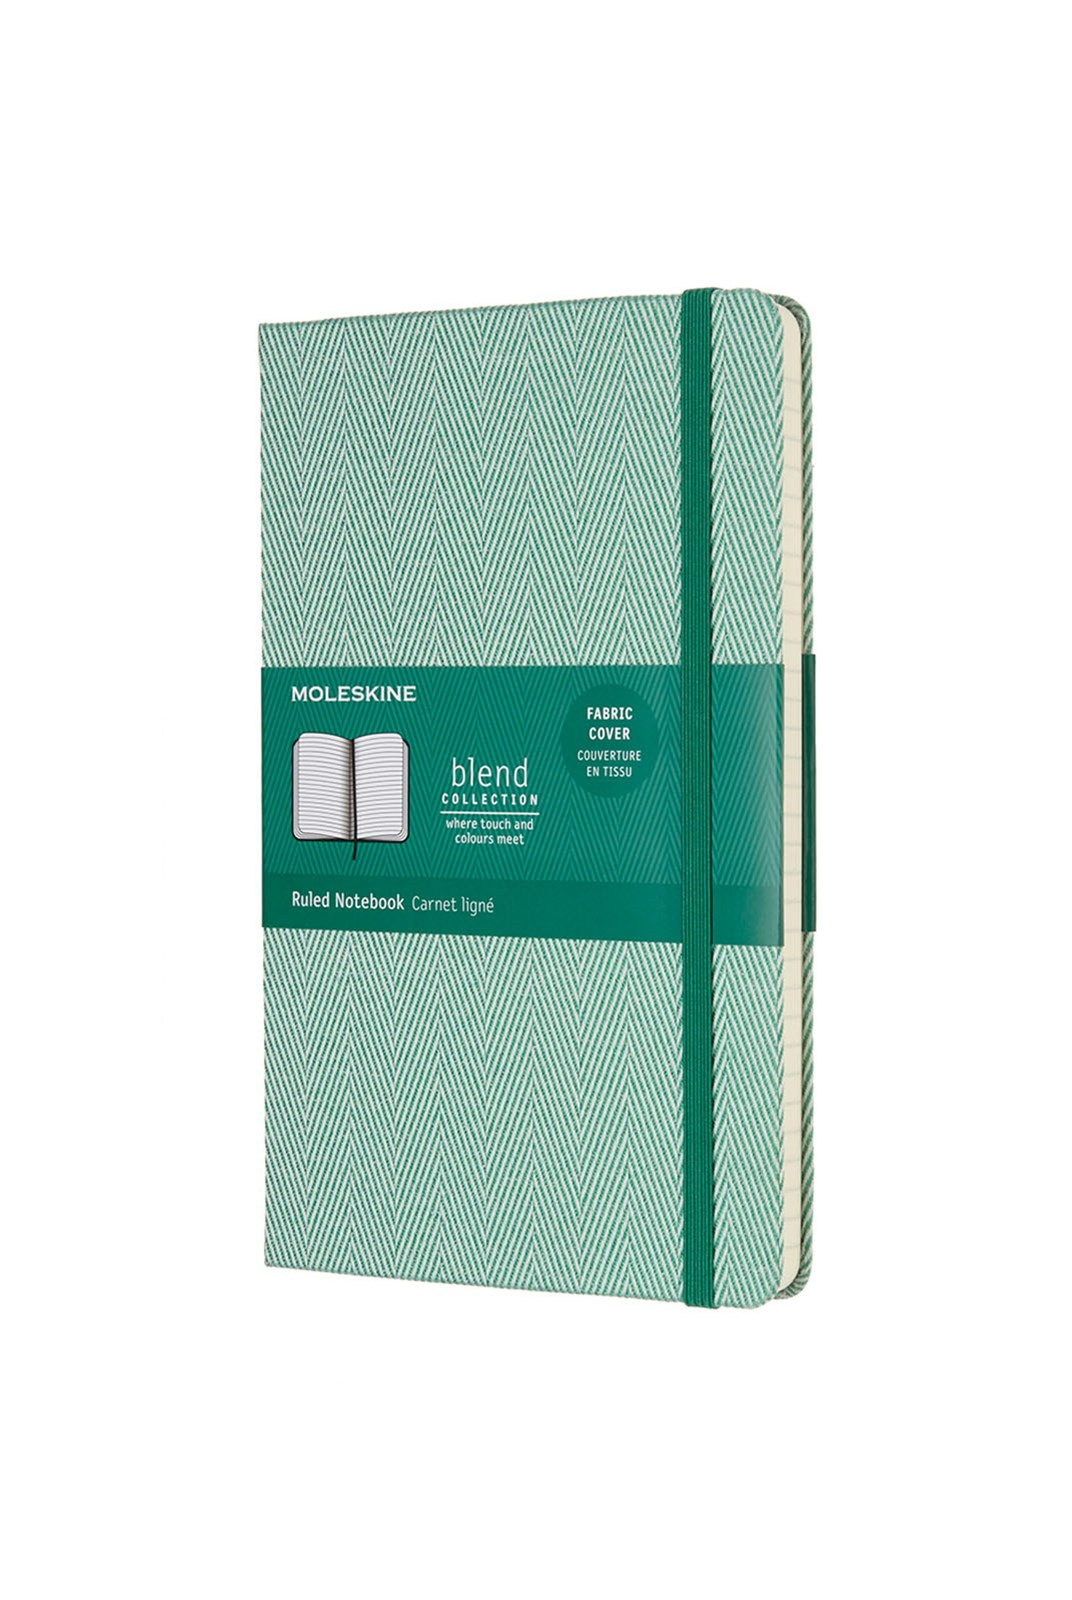 Moleskine - Blend Notebook - Ruled - Large - Twill Green